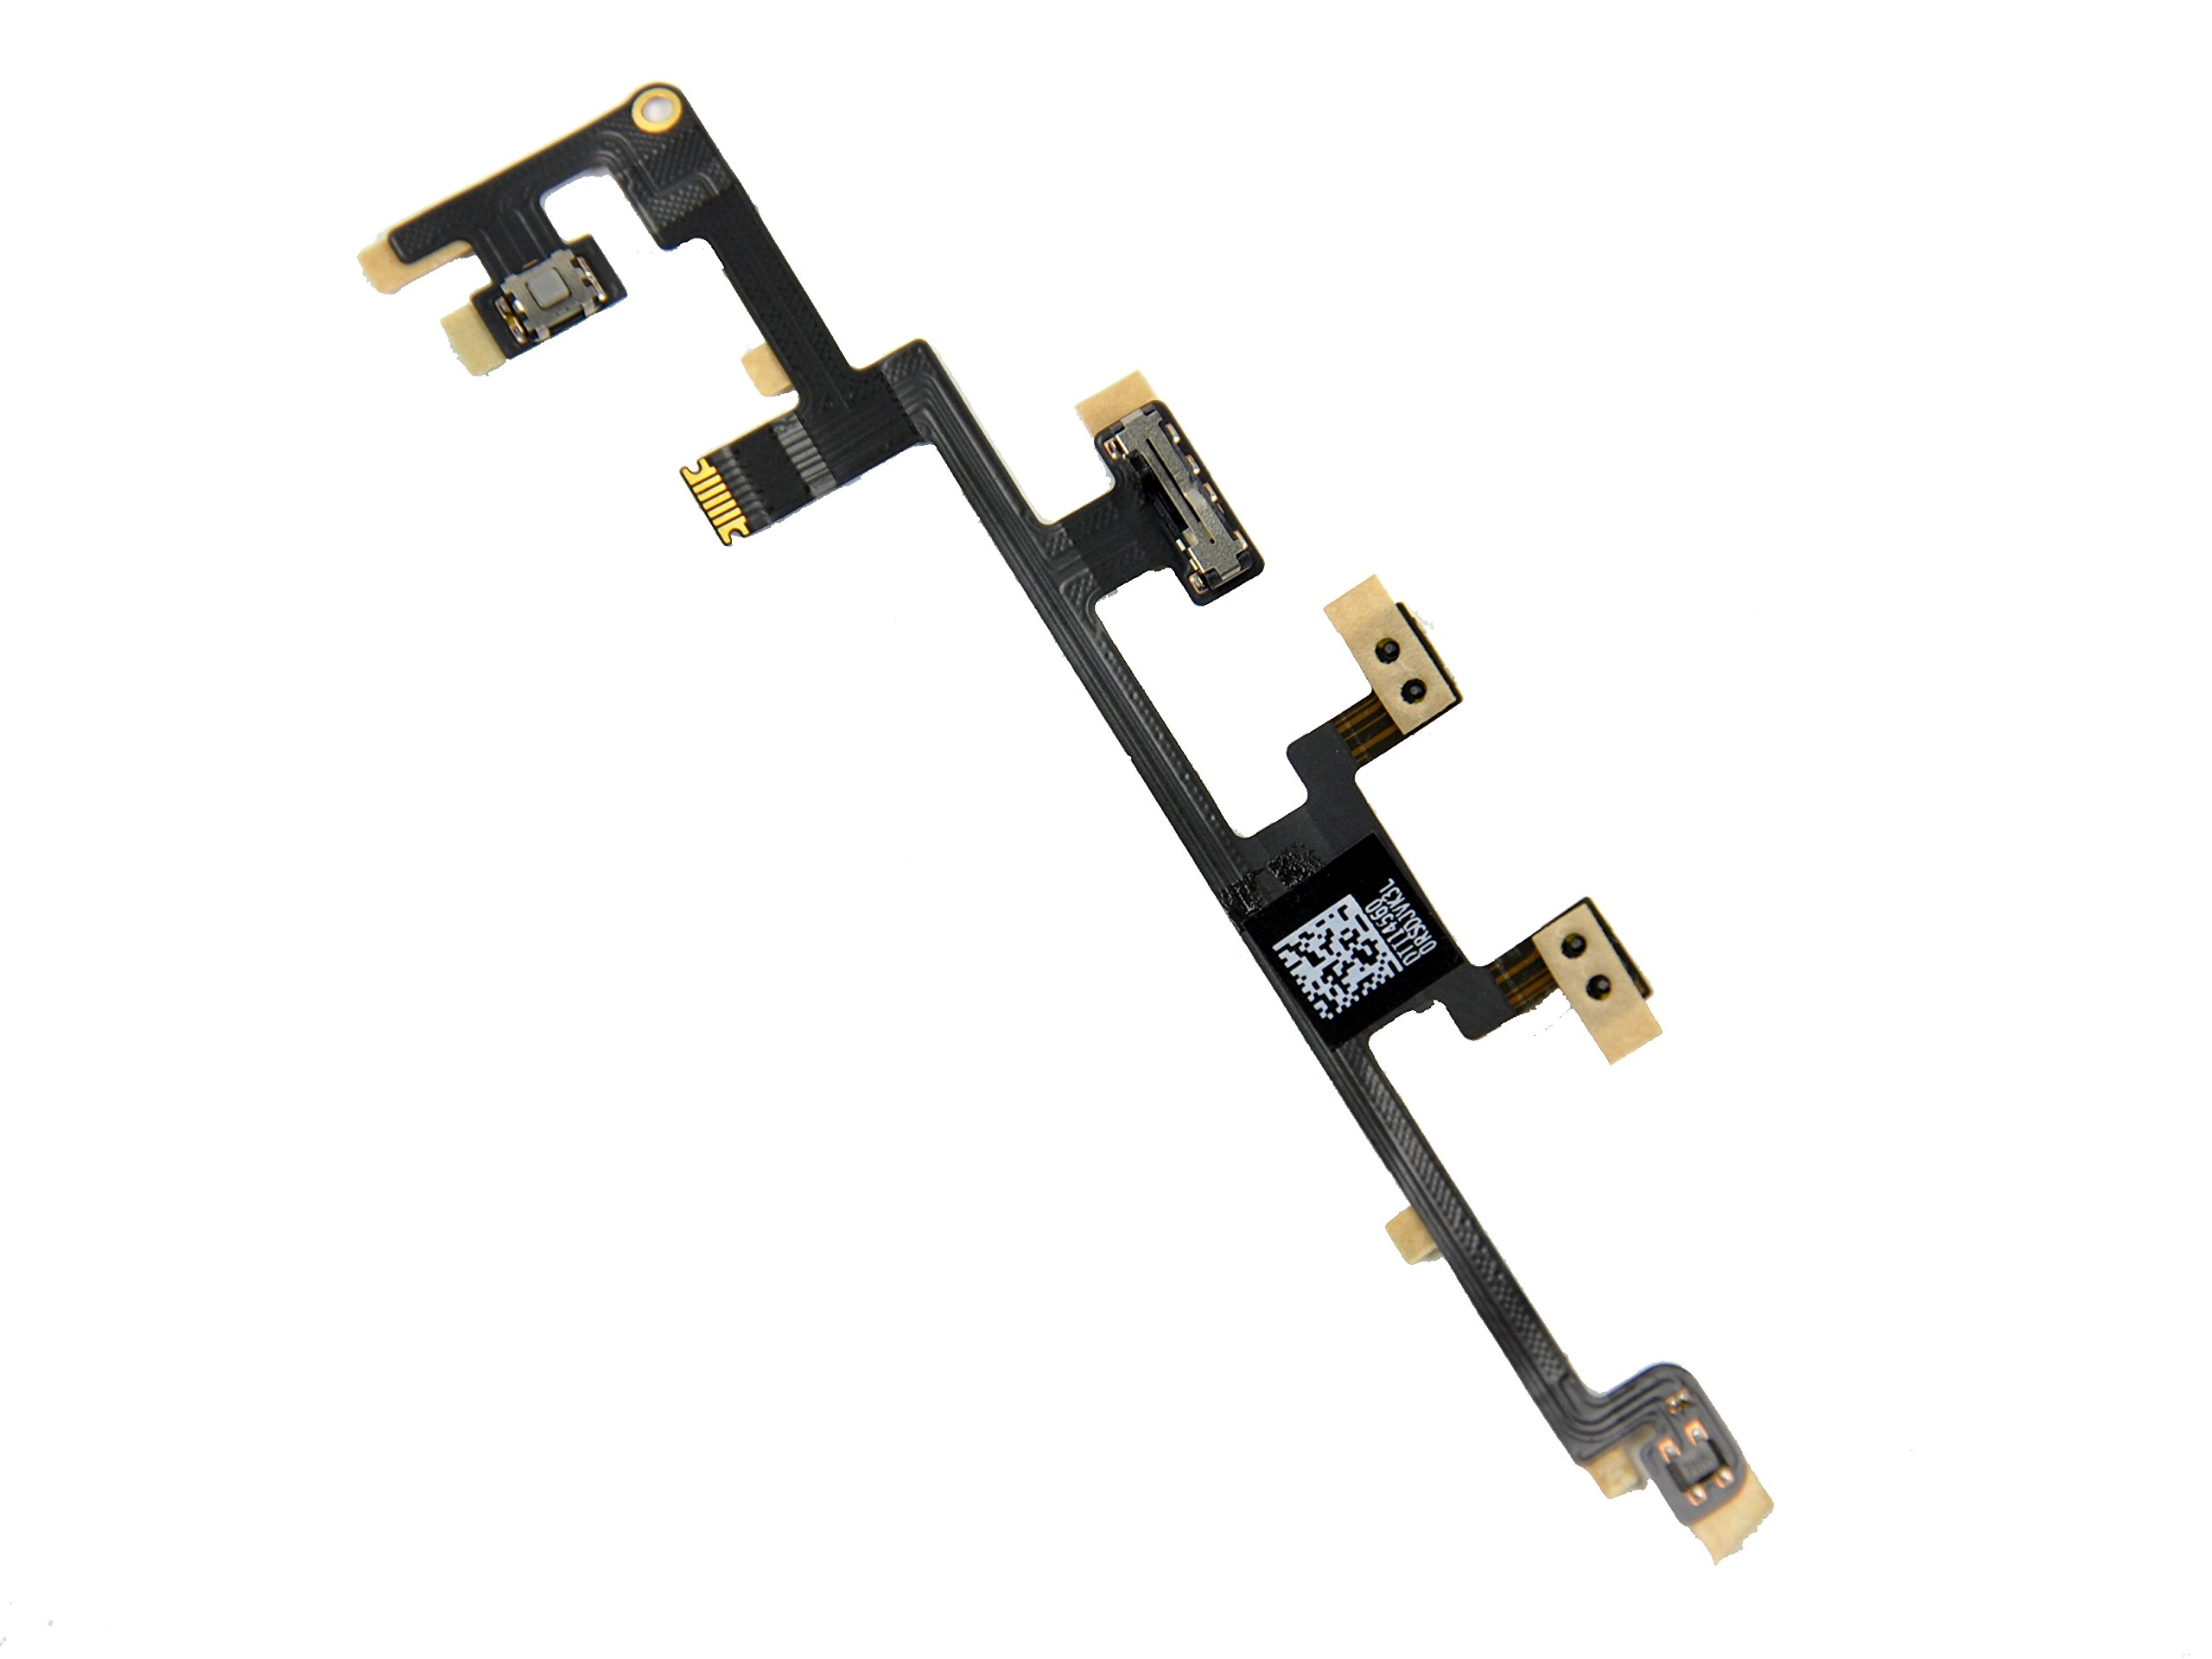 Volume and Power Button Cable Replacement for iPad 3